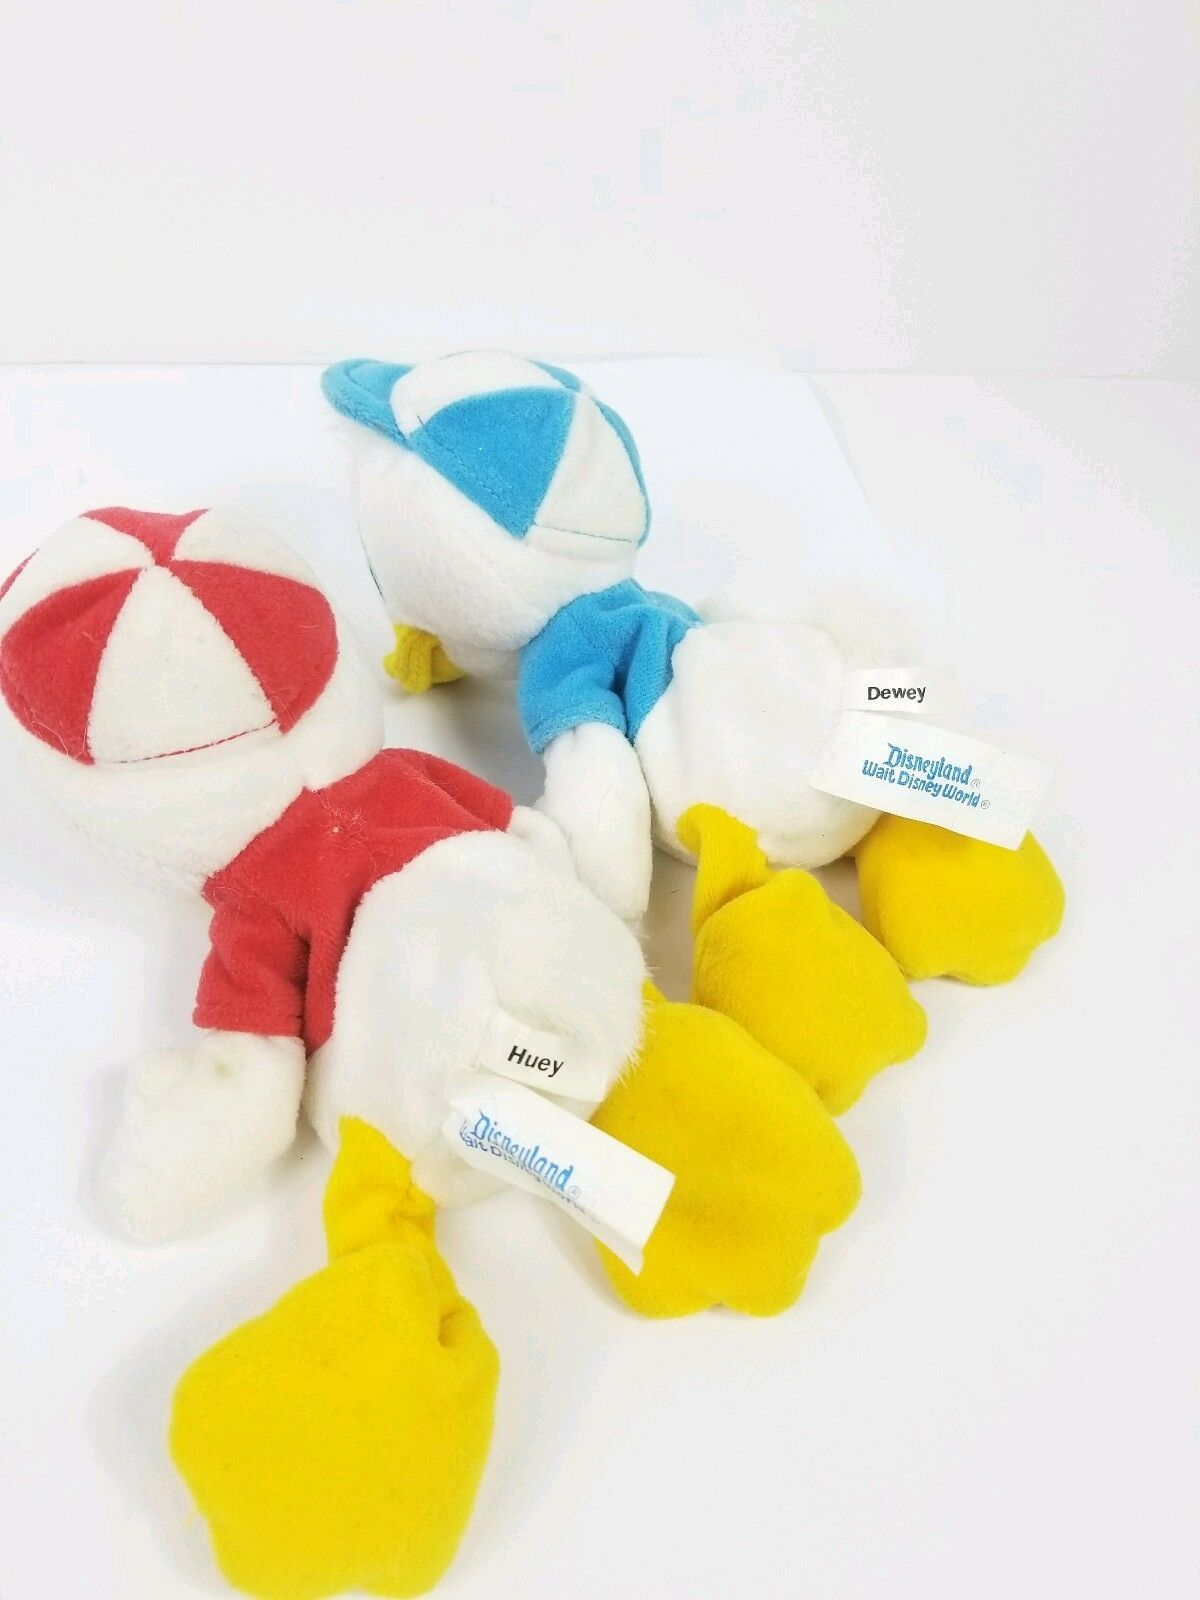 Disney Disneyland Vintage Huey Dewey Bean Bag Plush Toy Set 8 inch Ducks Lot